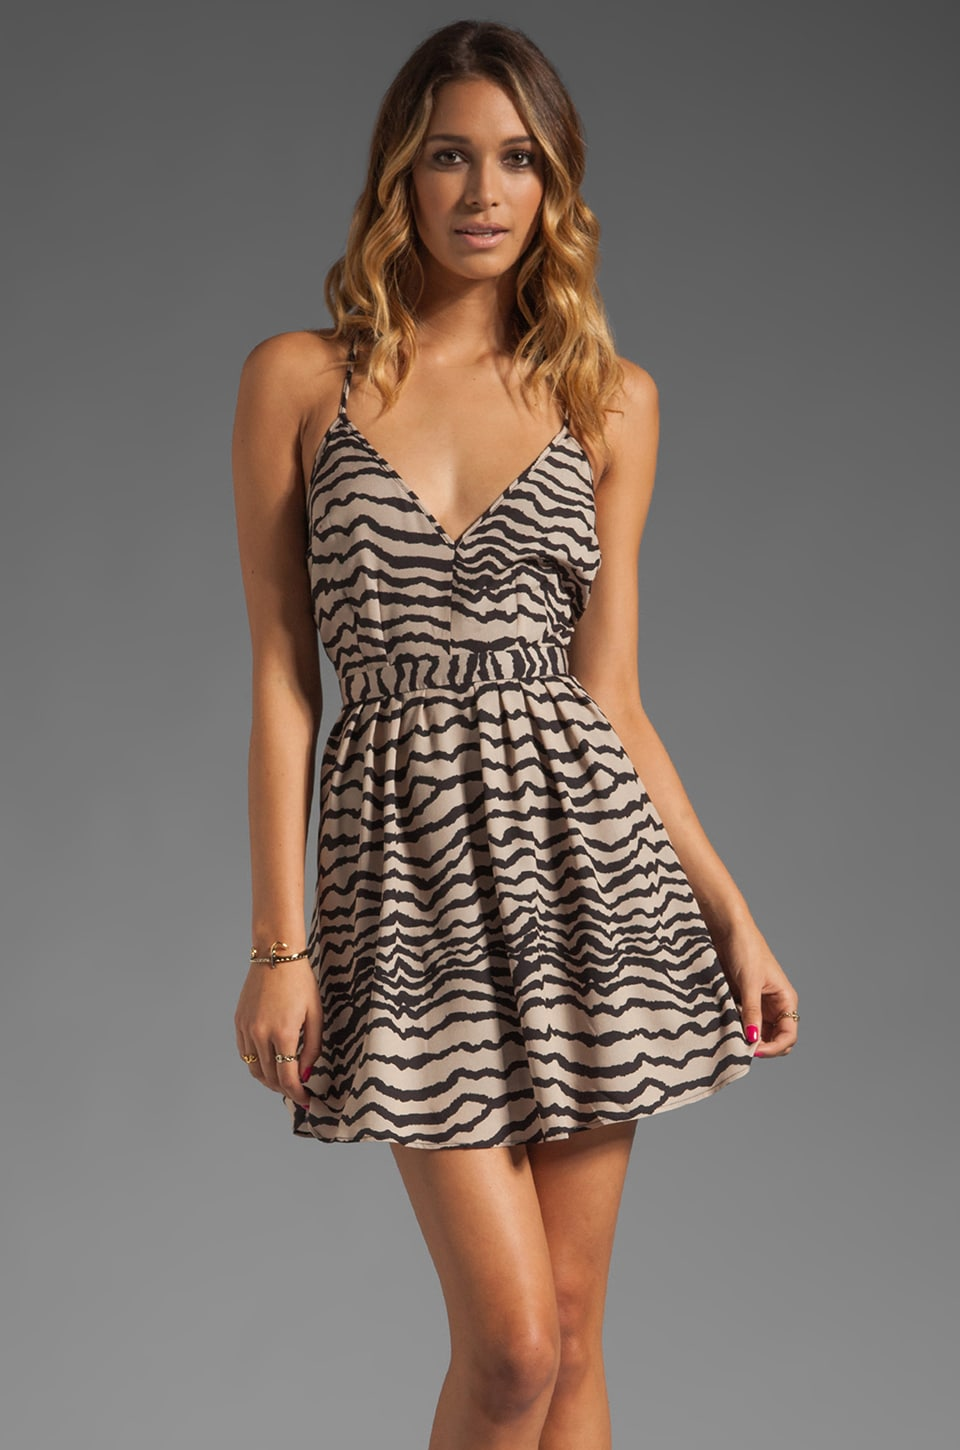 Capulet Criss Cross Dress in Animal Stripe